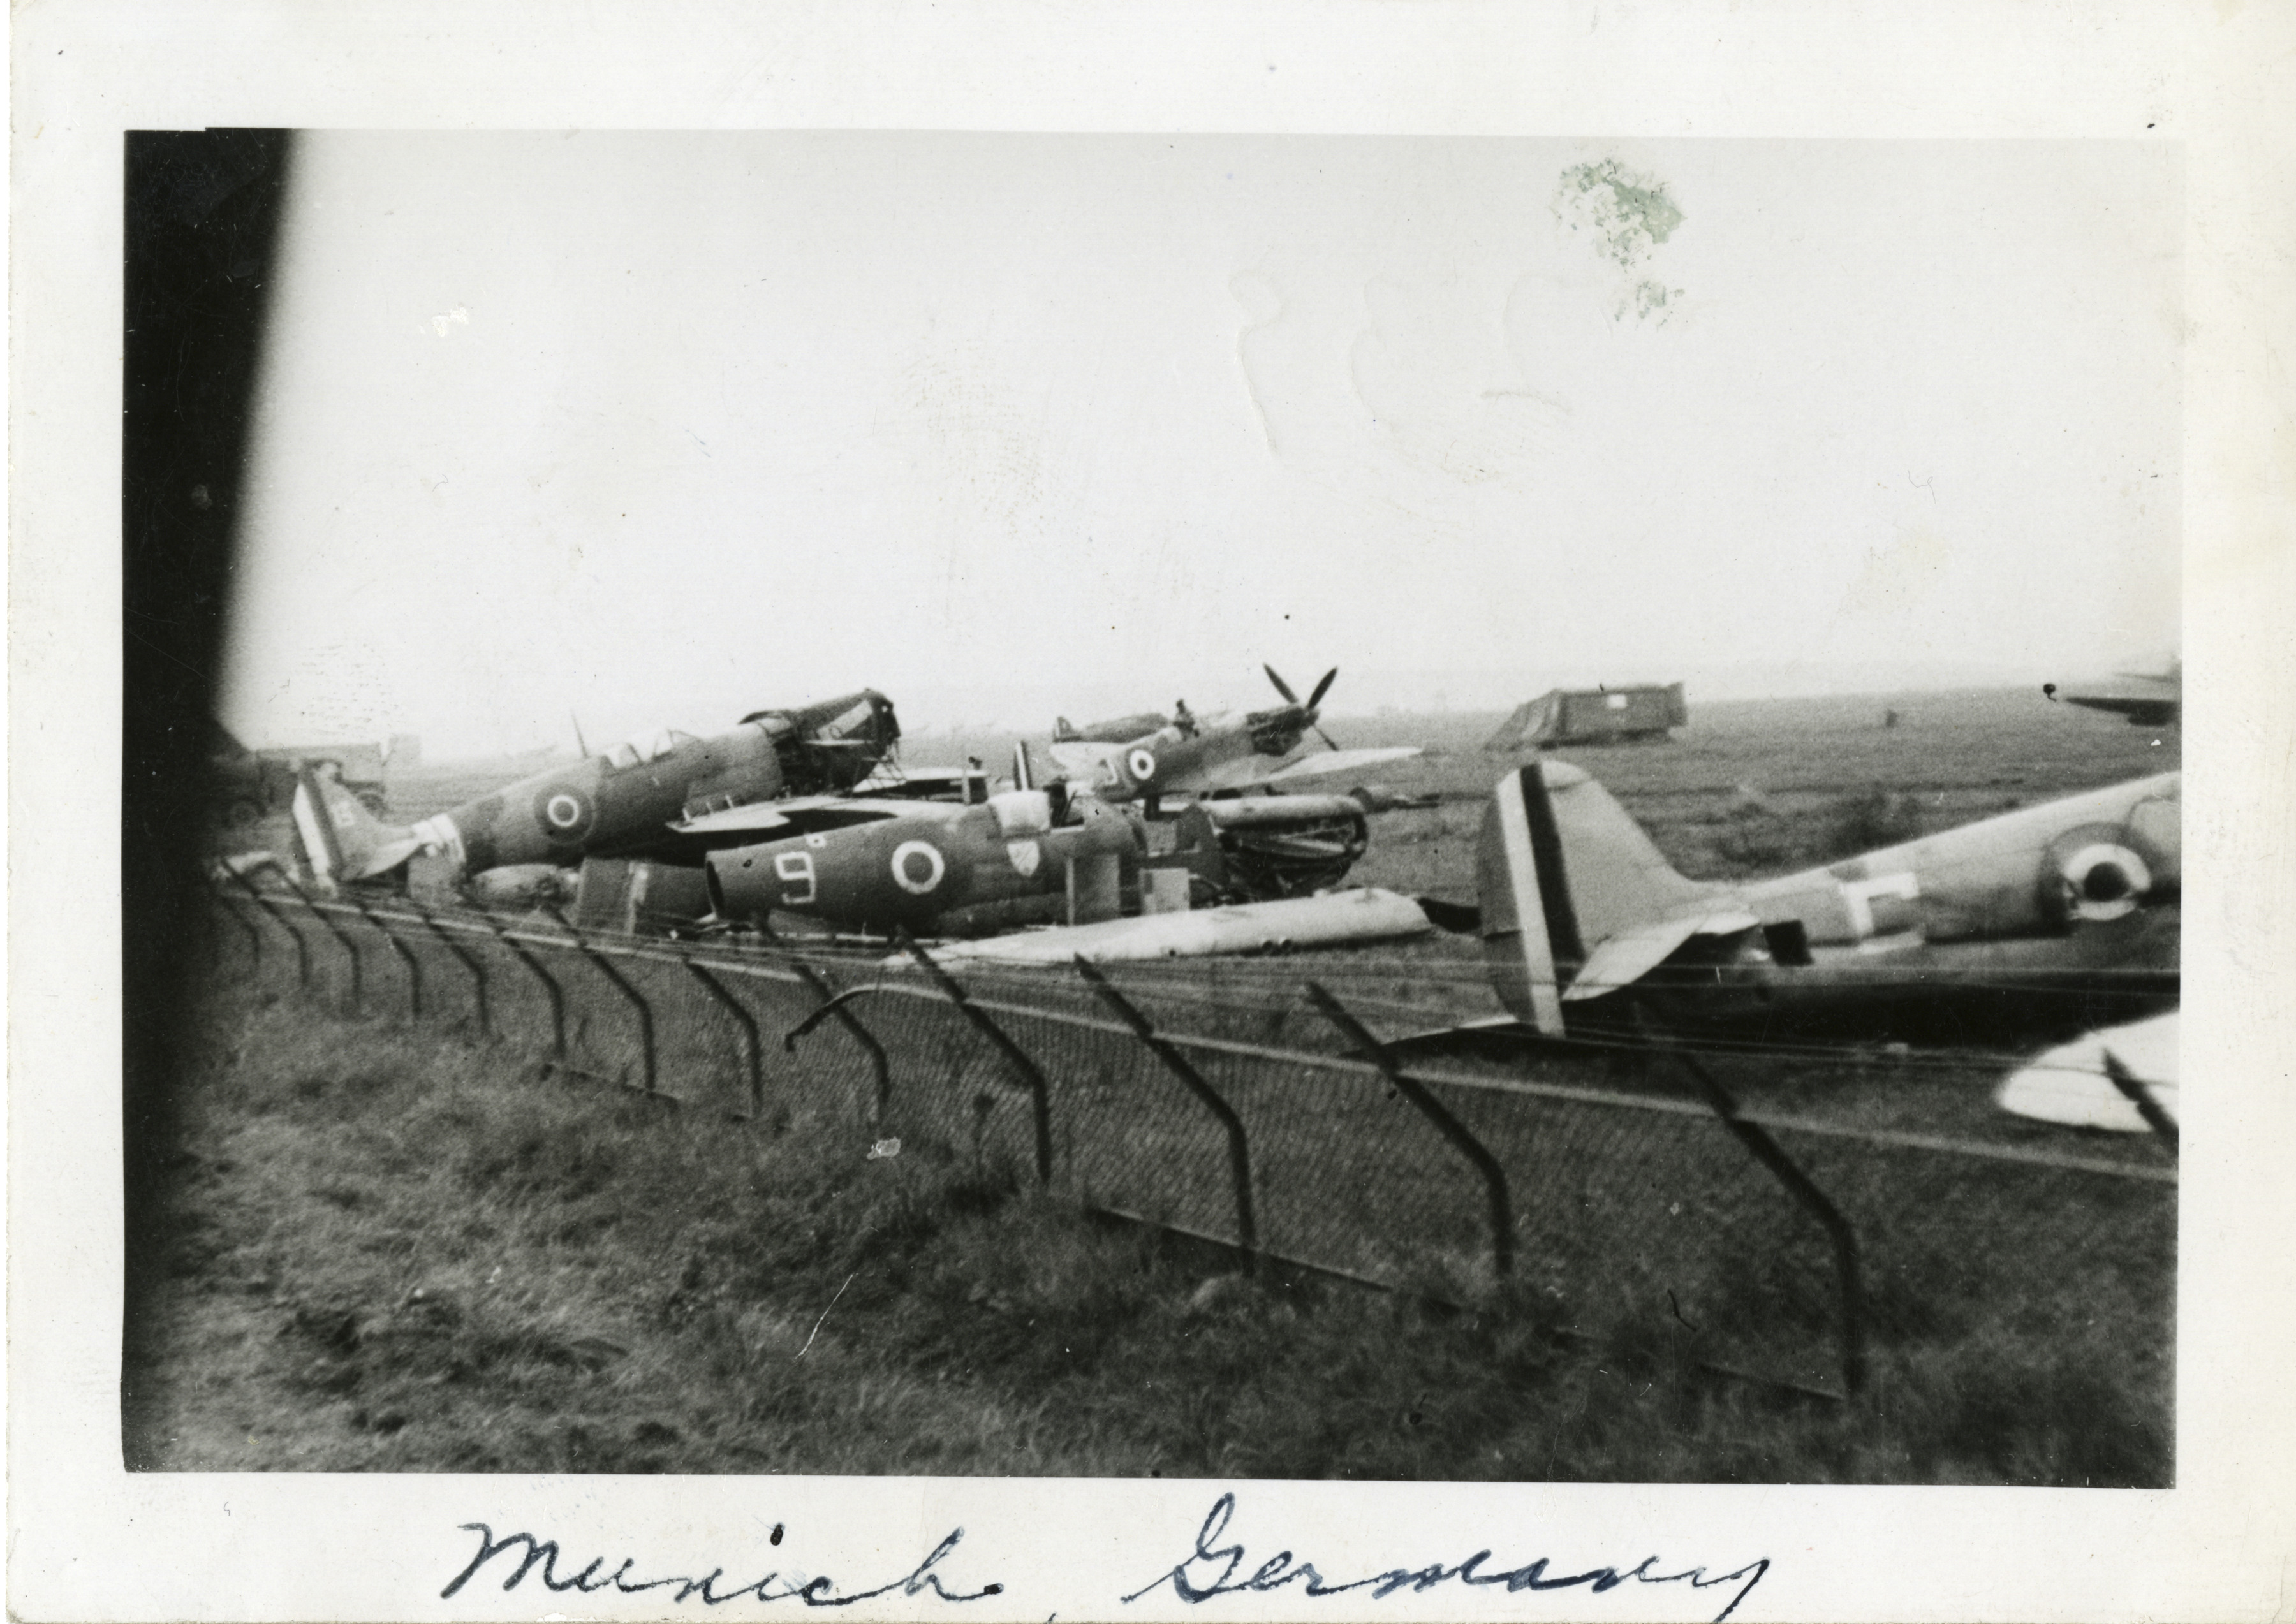 Damaged British aircraft in Germany | The Digital